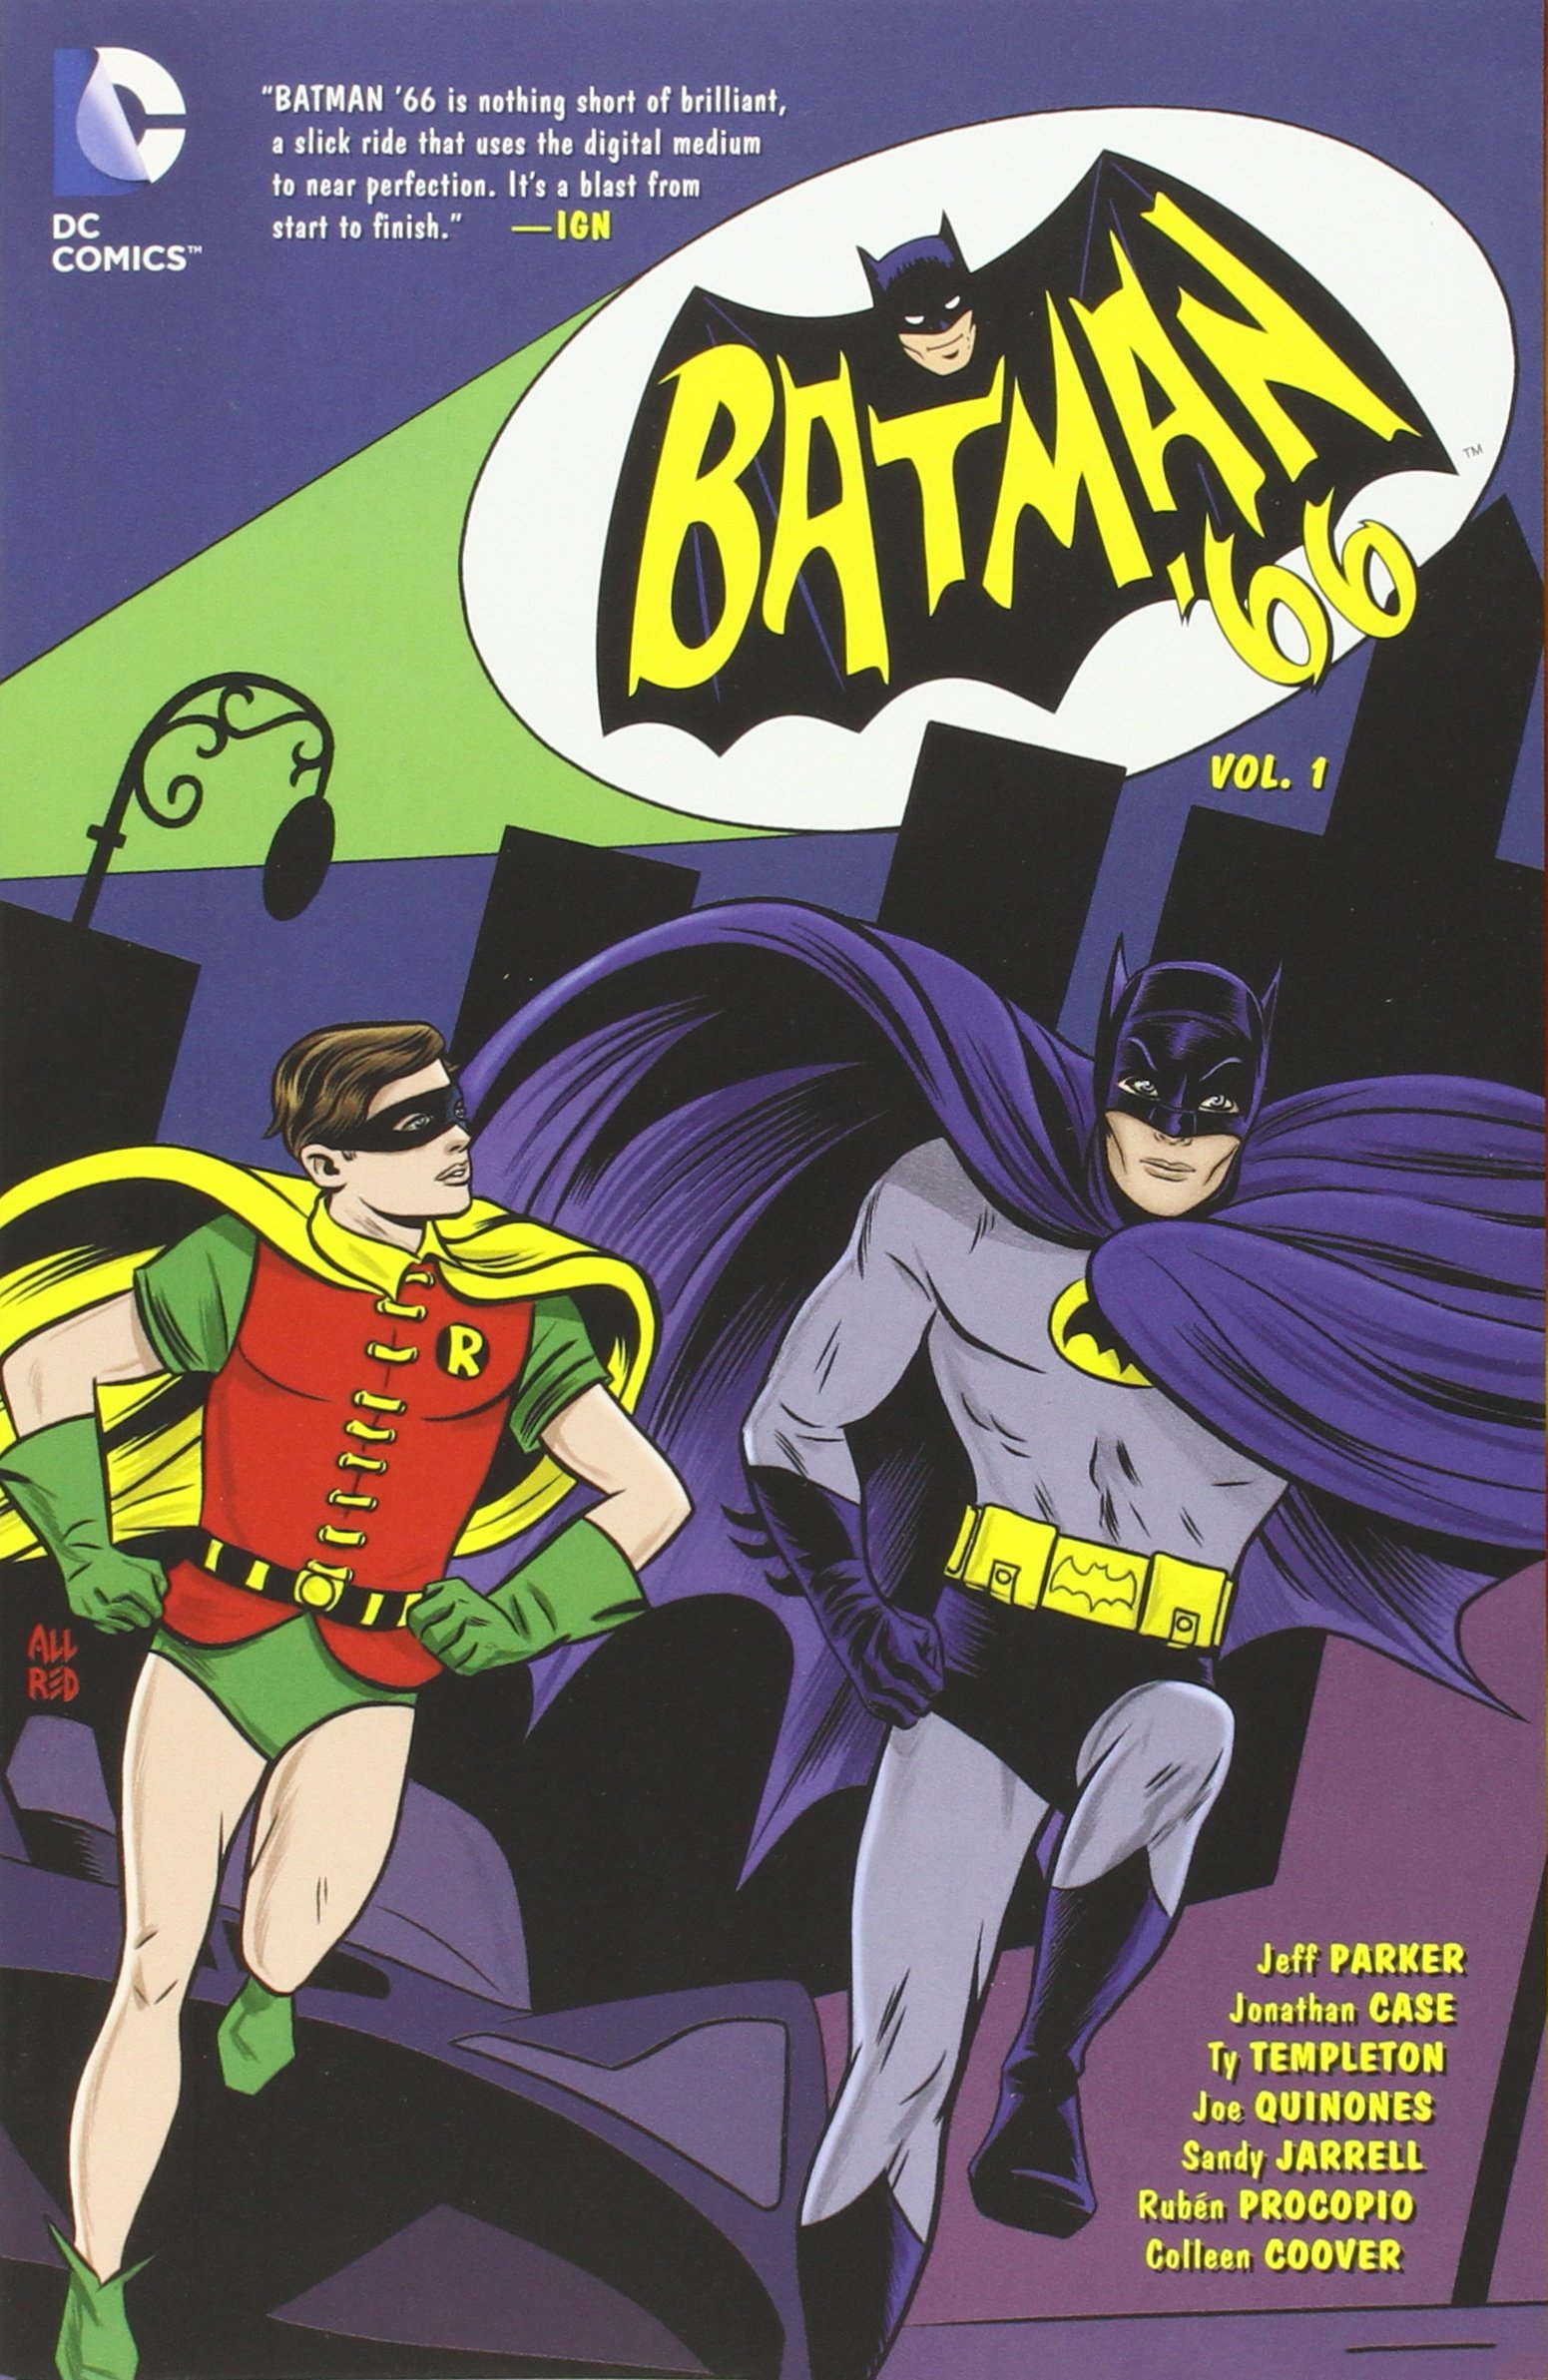 Batman '66 1 - Volume 1